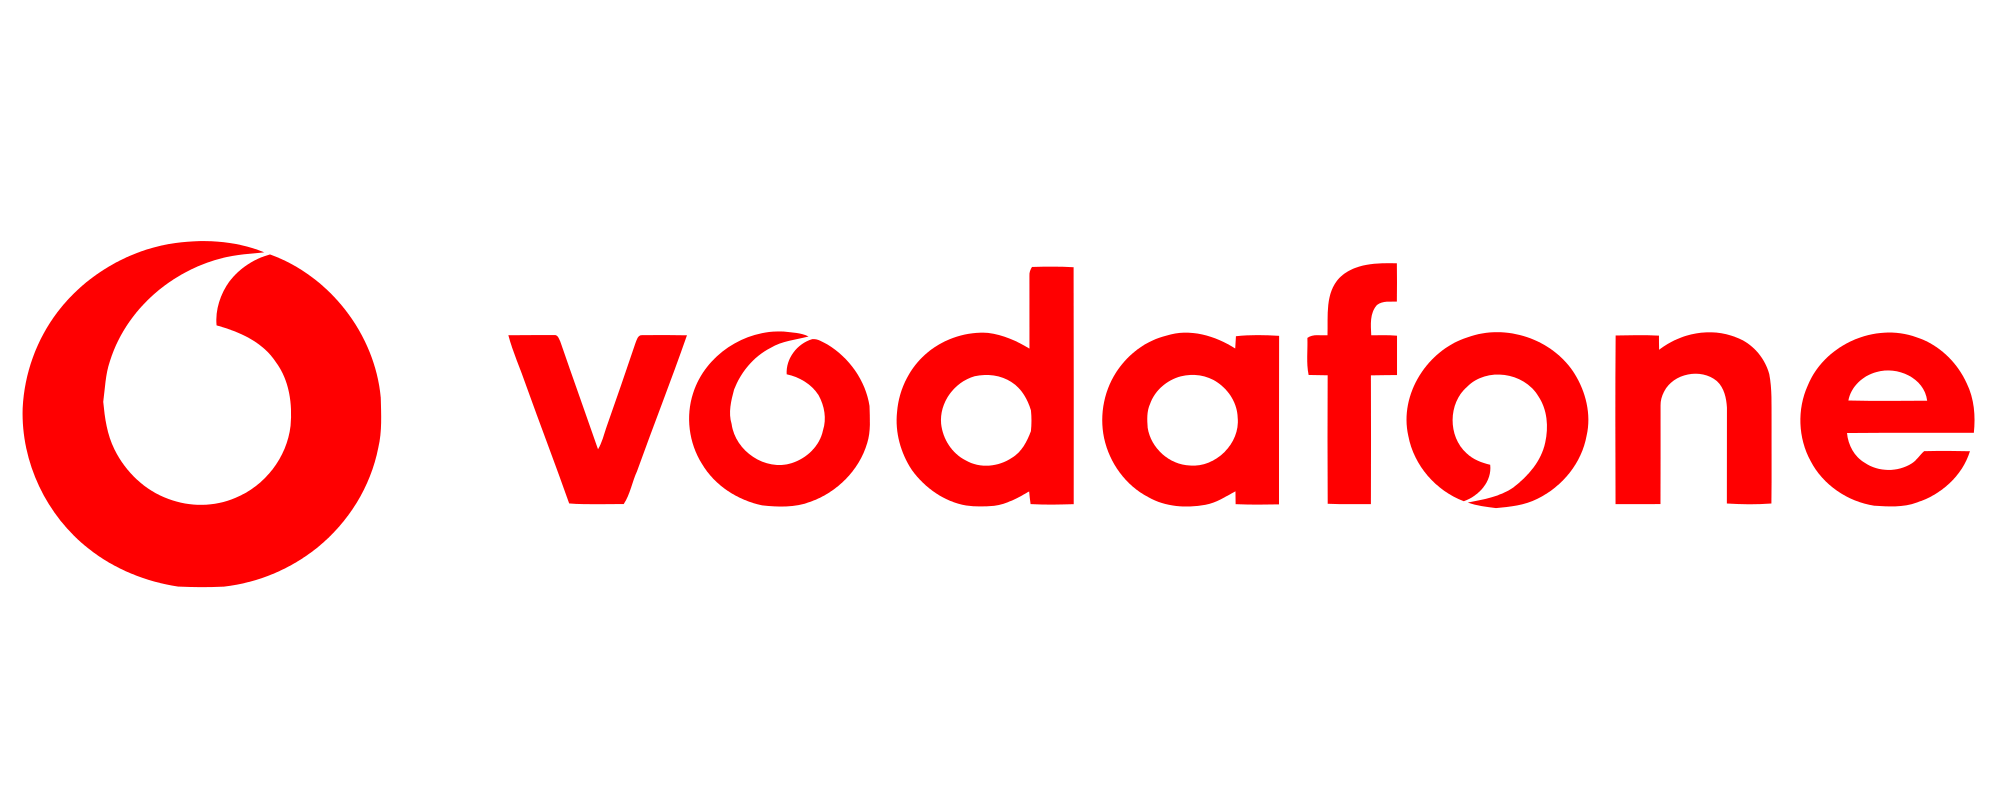 vodafone-png-file-vodafone-2003-2007-png-2000.png